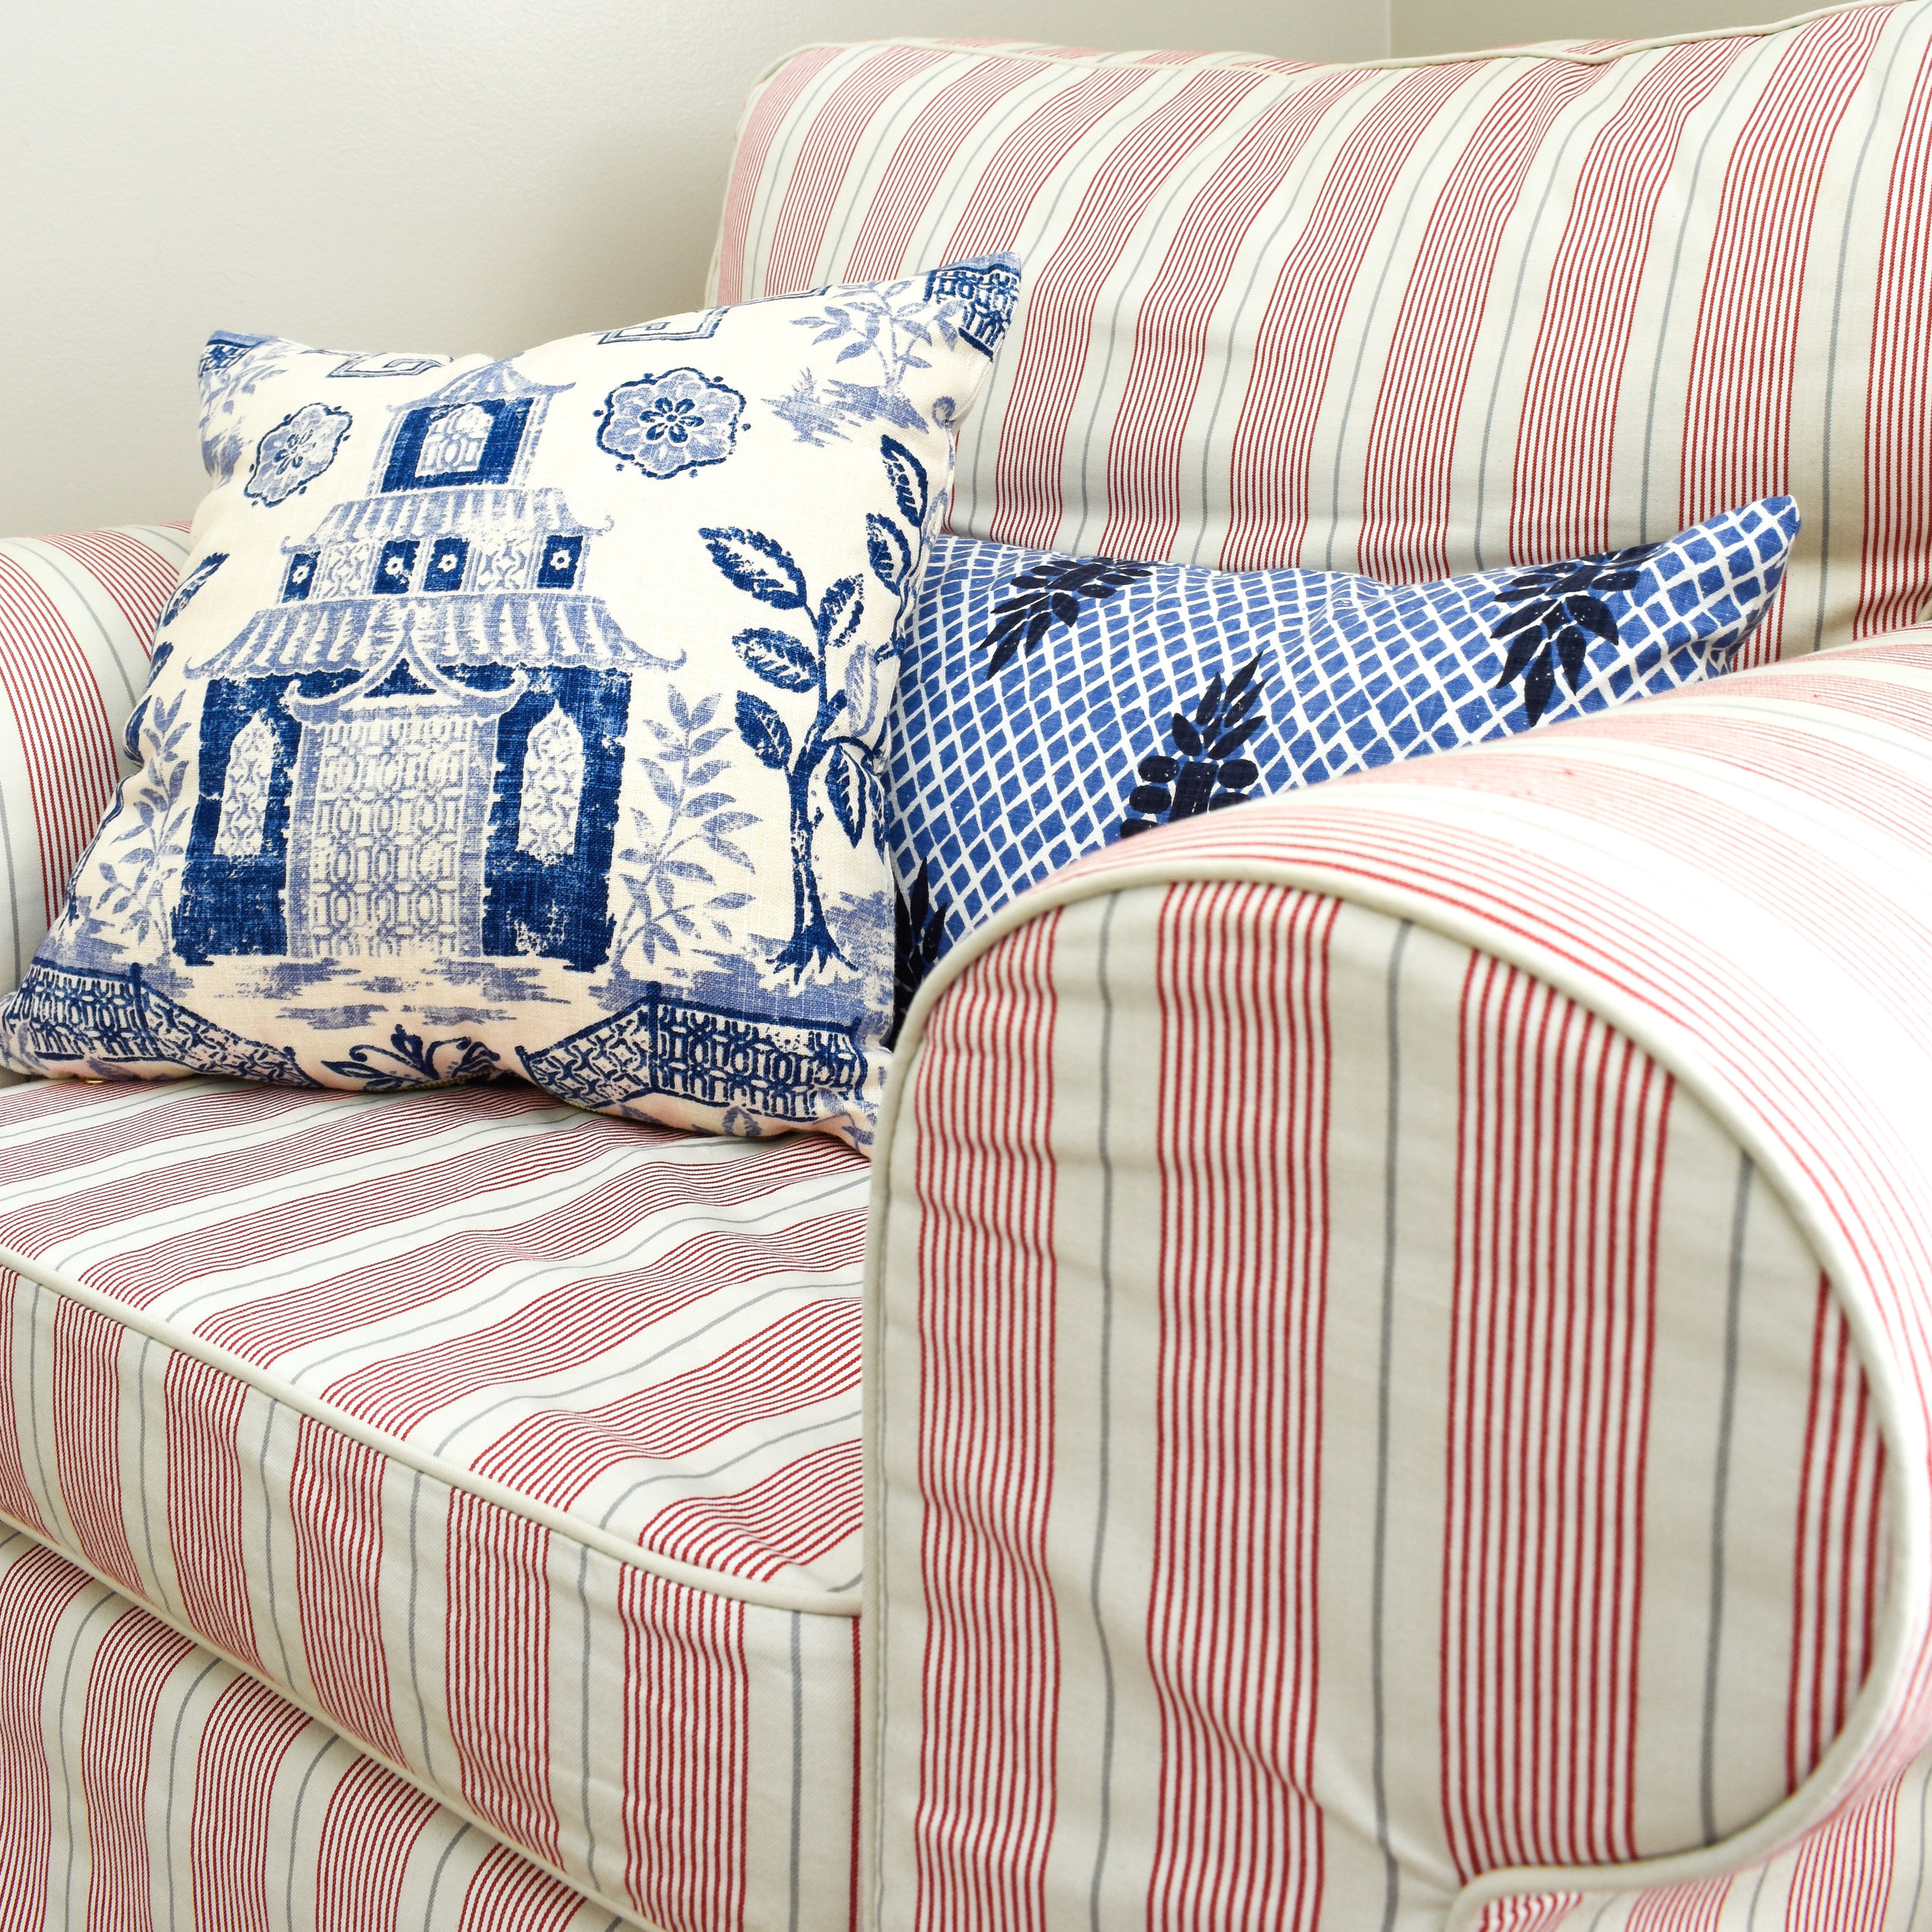 mix patterns and contrasting colors to add interest in your home decor